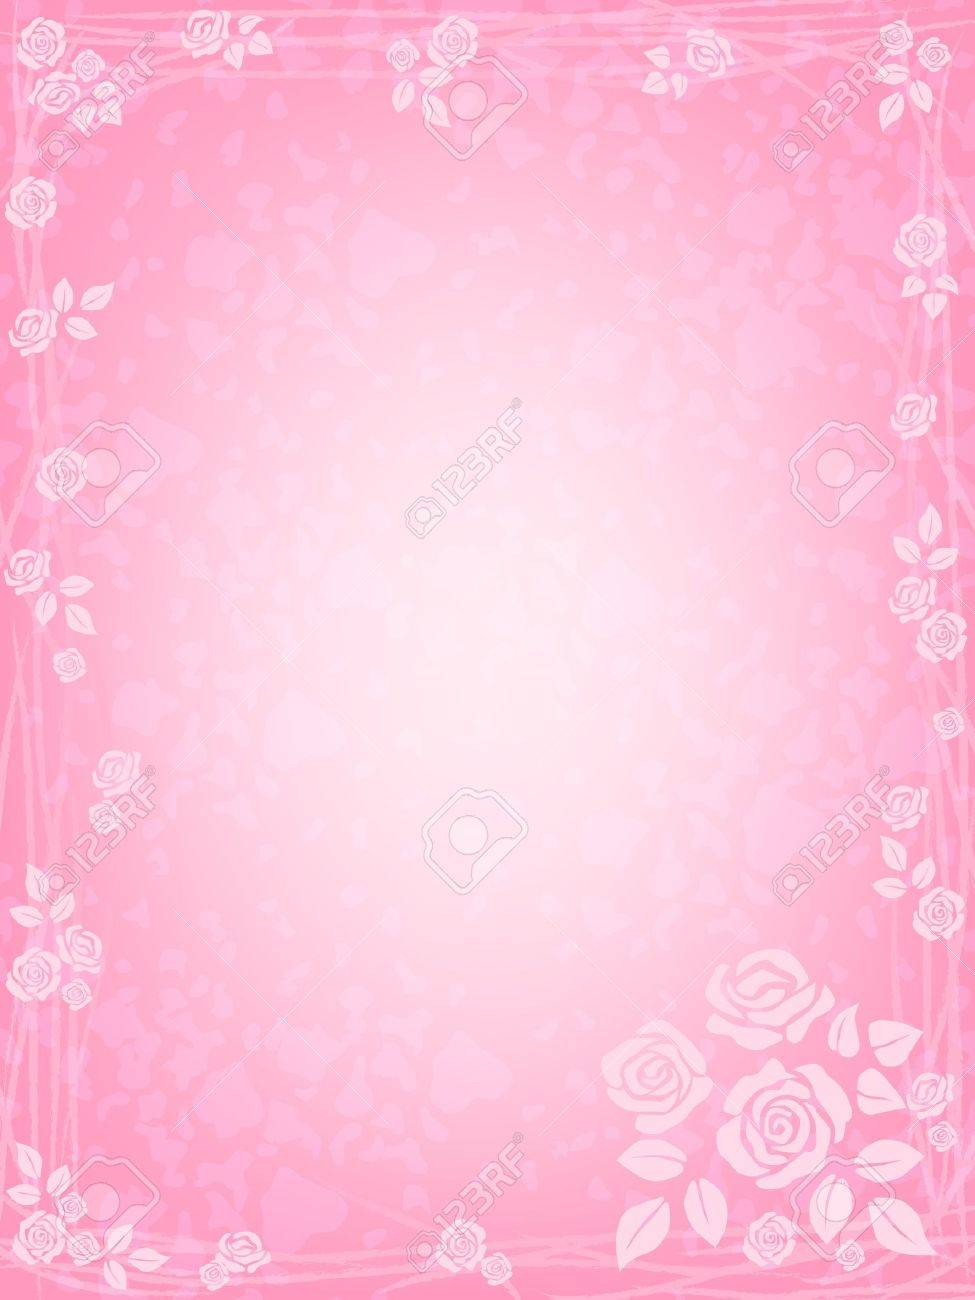 romantic background with pink roses Stock Vector - 11877470